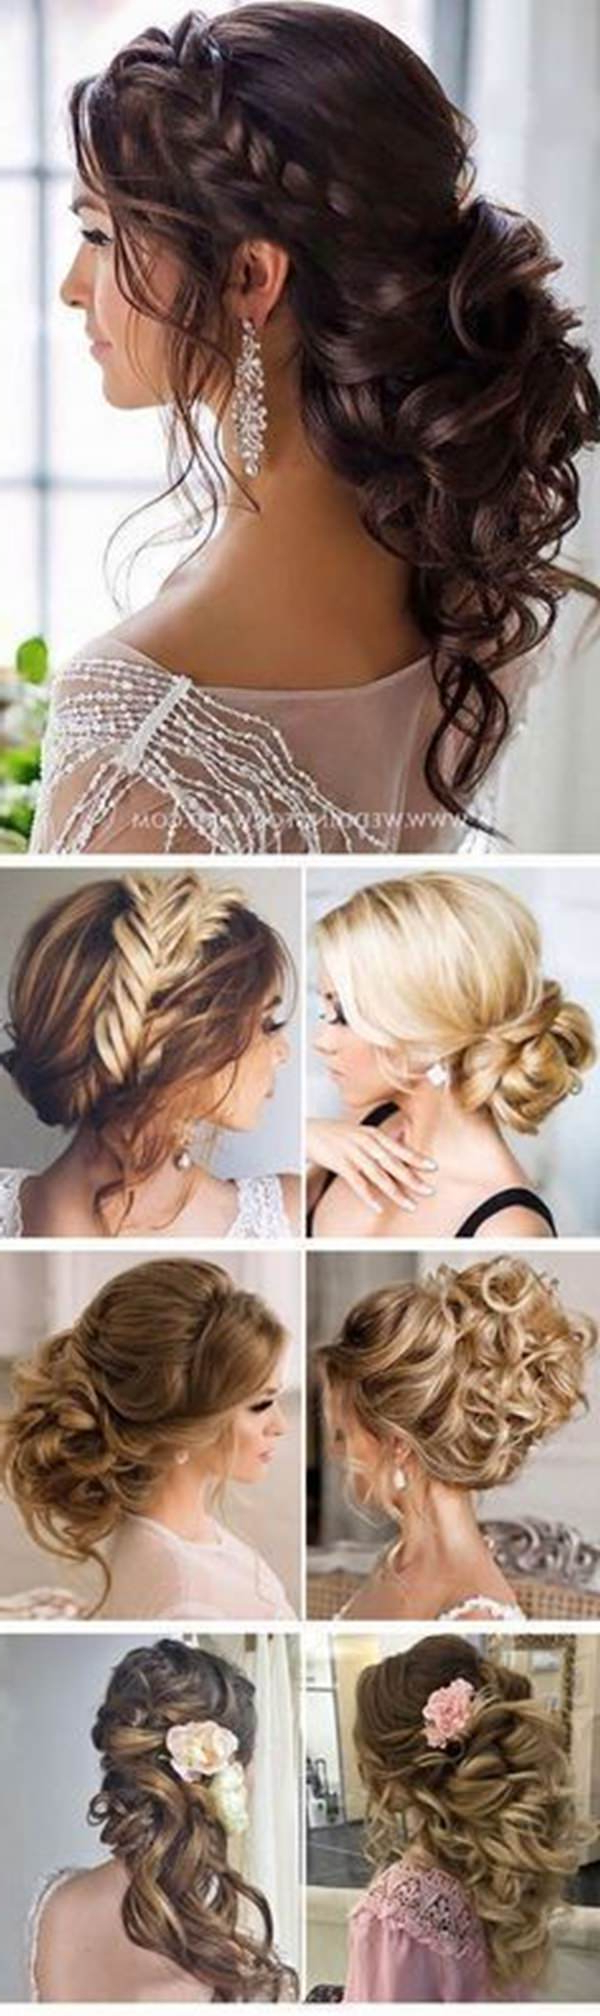 2017 Volumized Low Chignon Prom Hairstyles Within 154 Updos For Long Hair Featuring Beautiful Braids And Buns (Gallery 16 of 20)